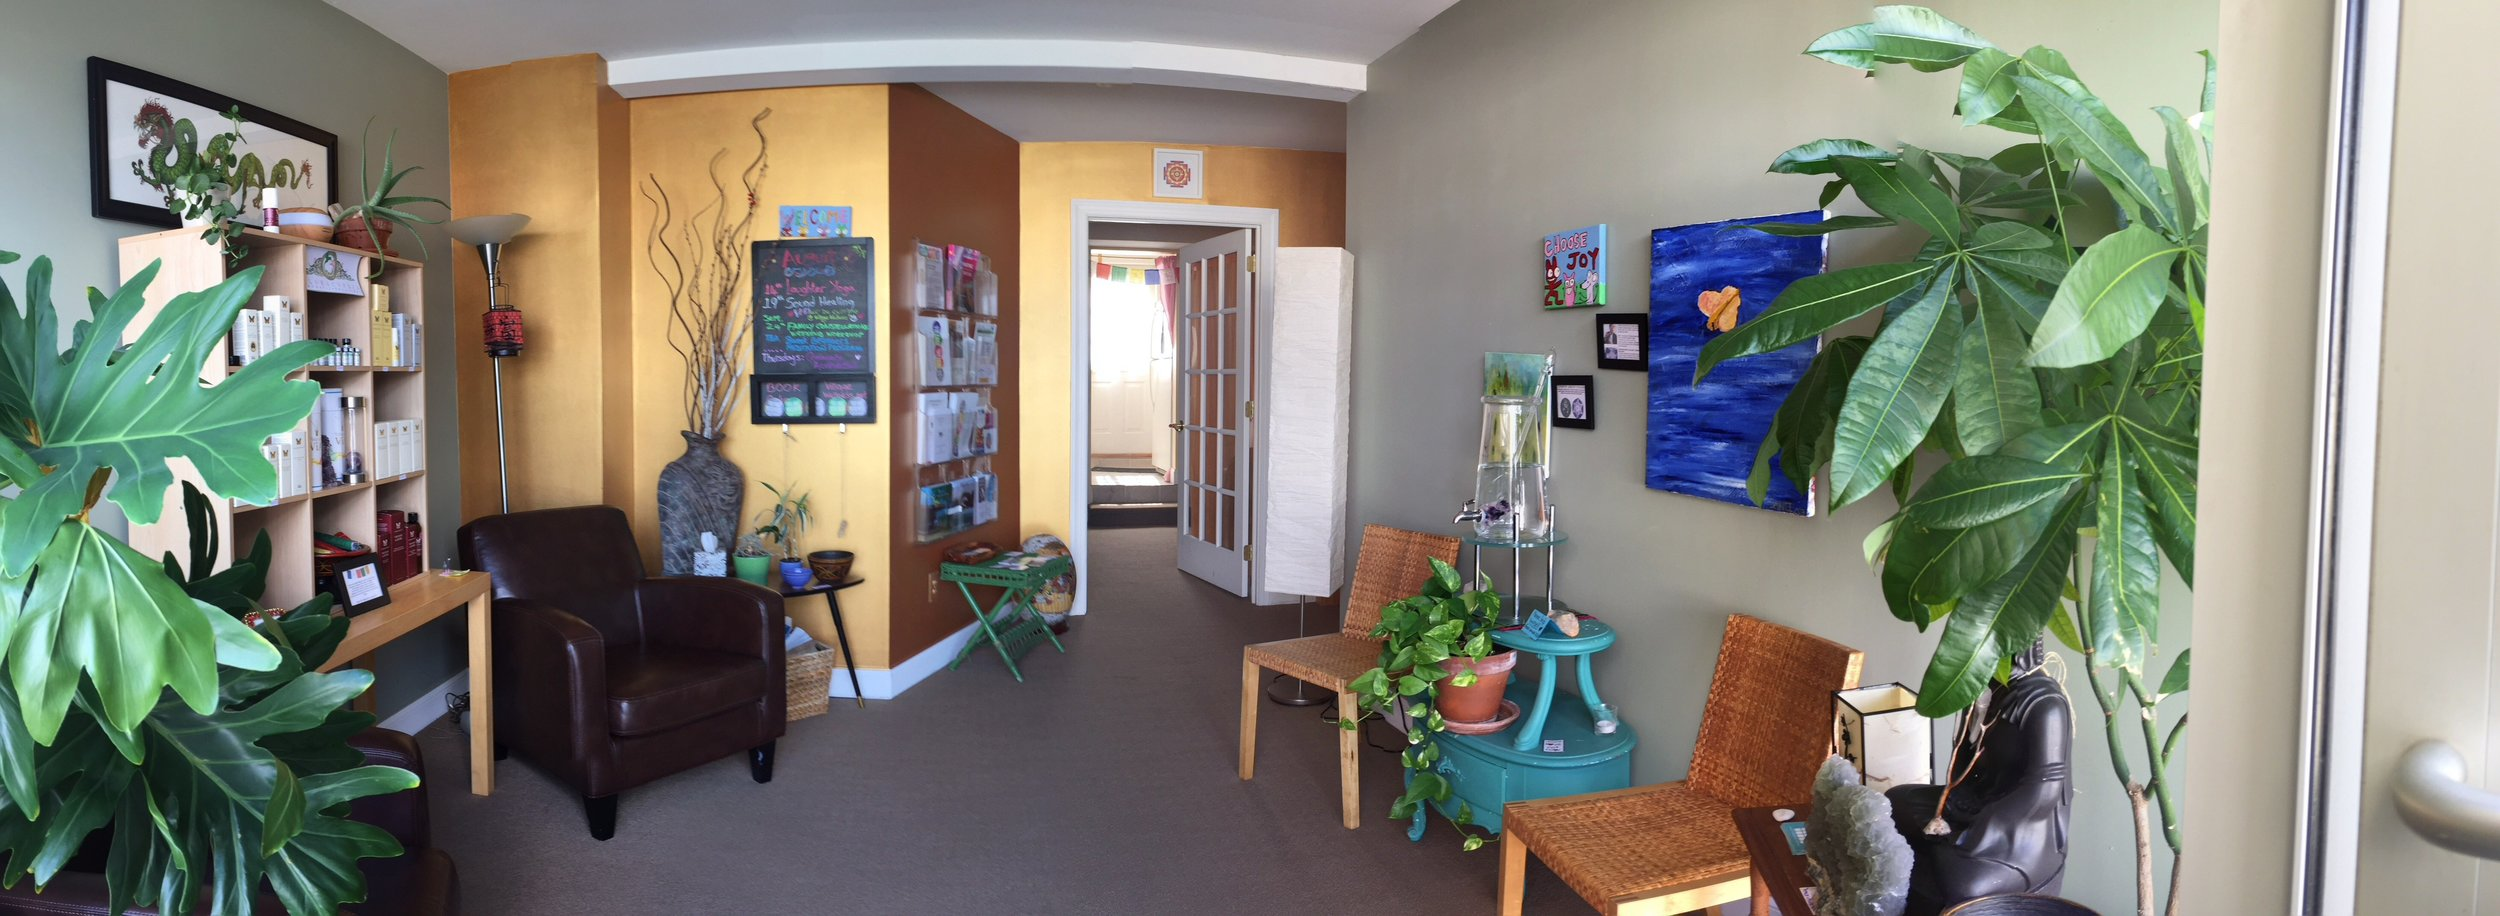 Super wide angle shot of the Village Wellness waiting room